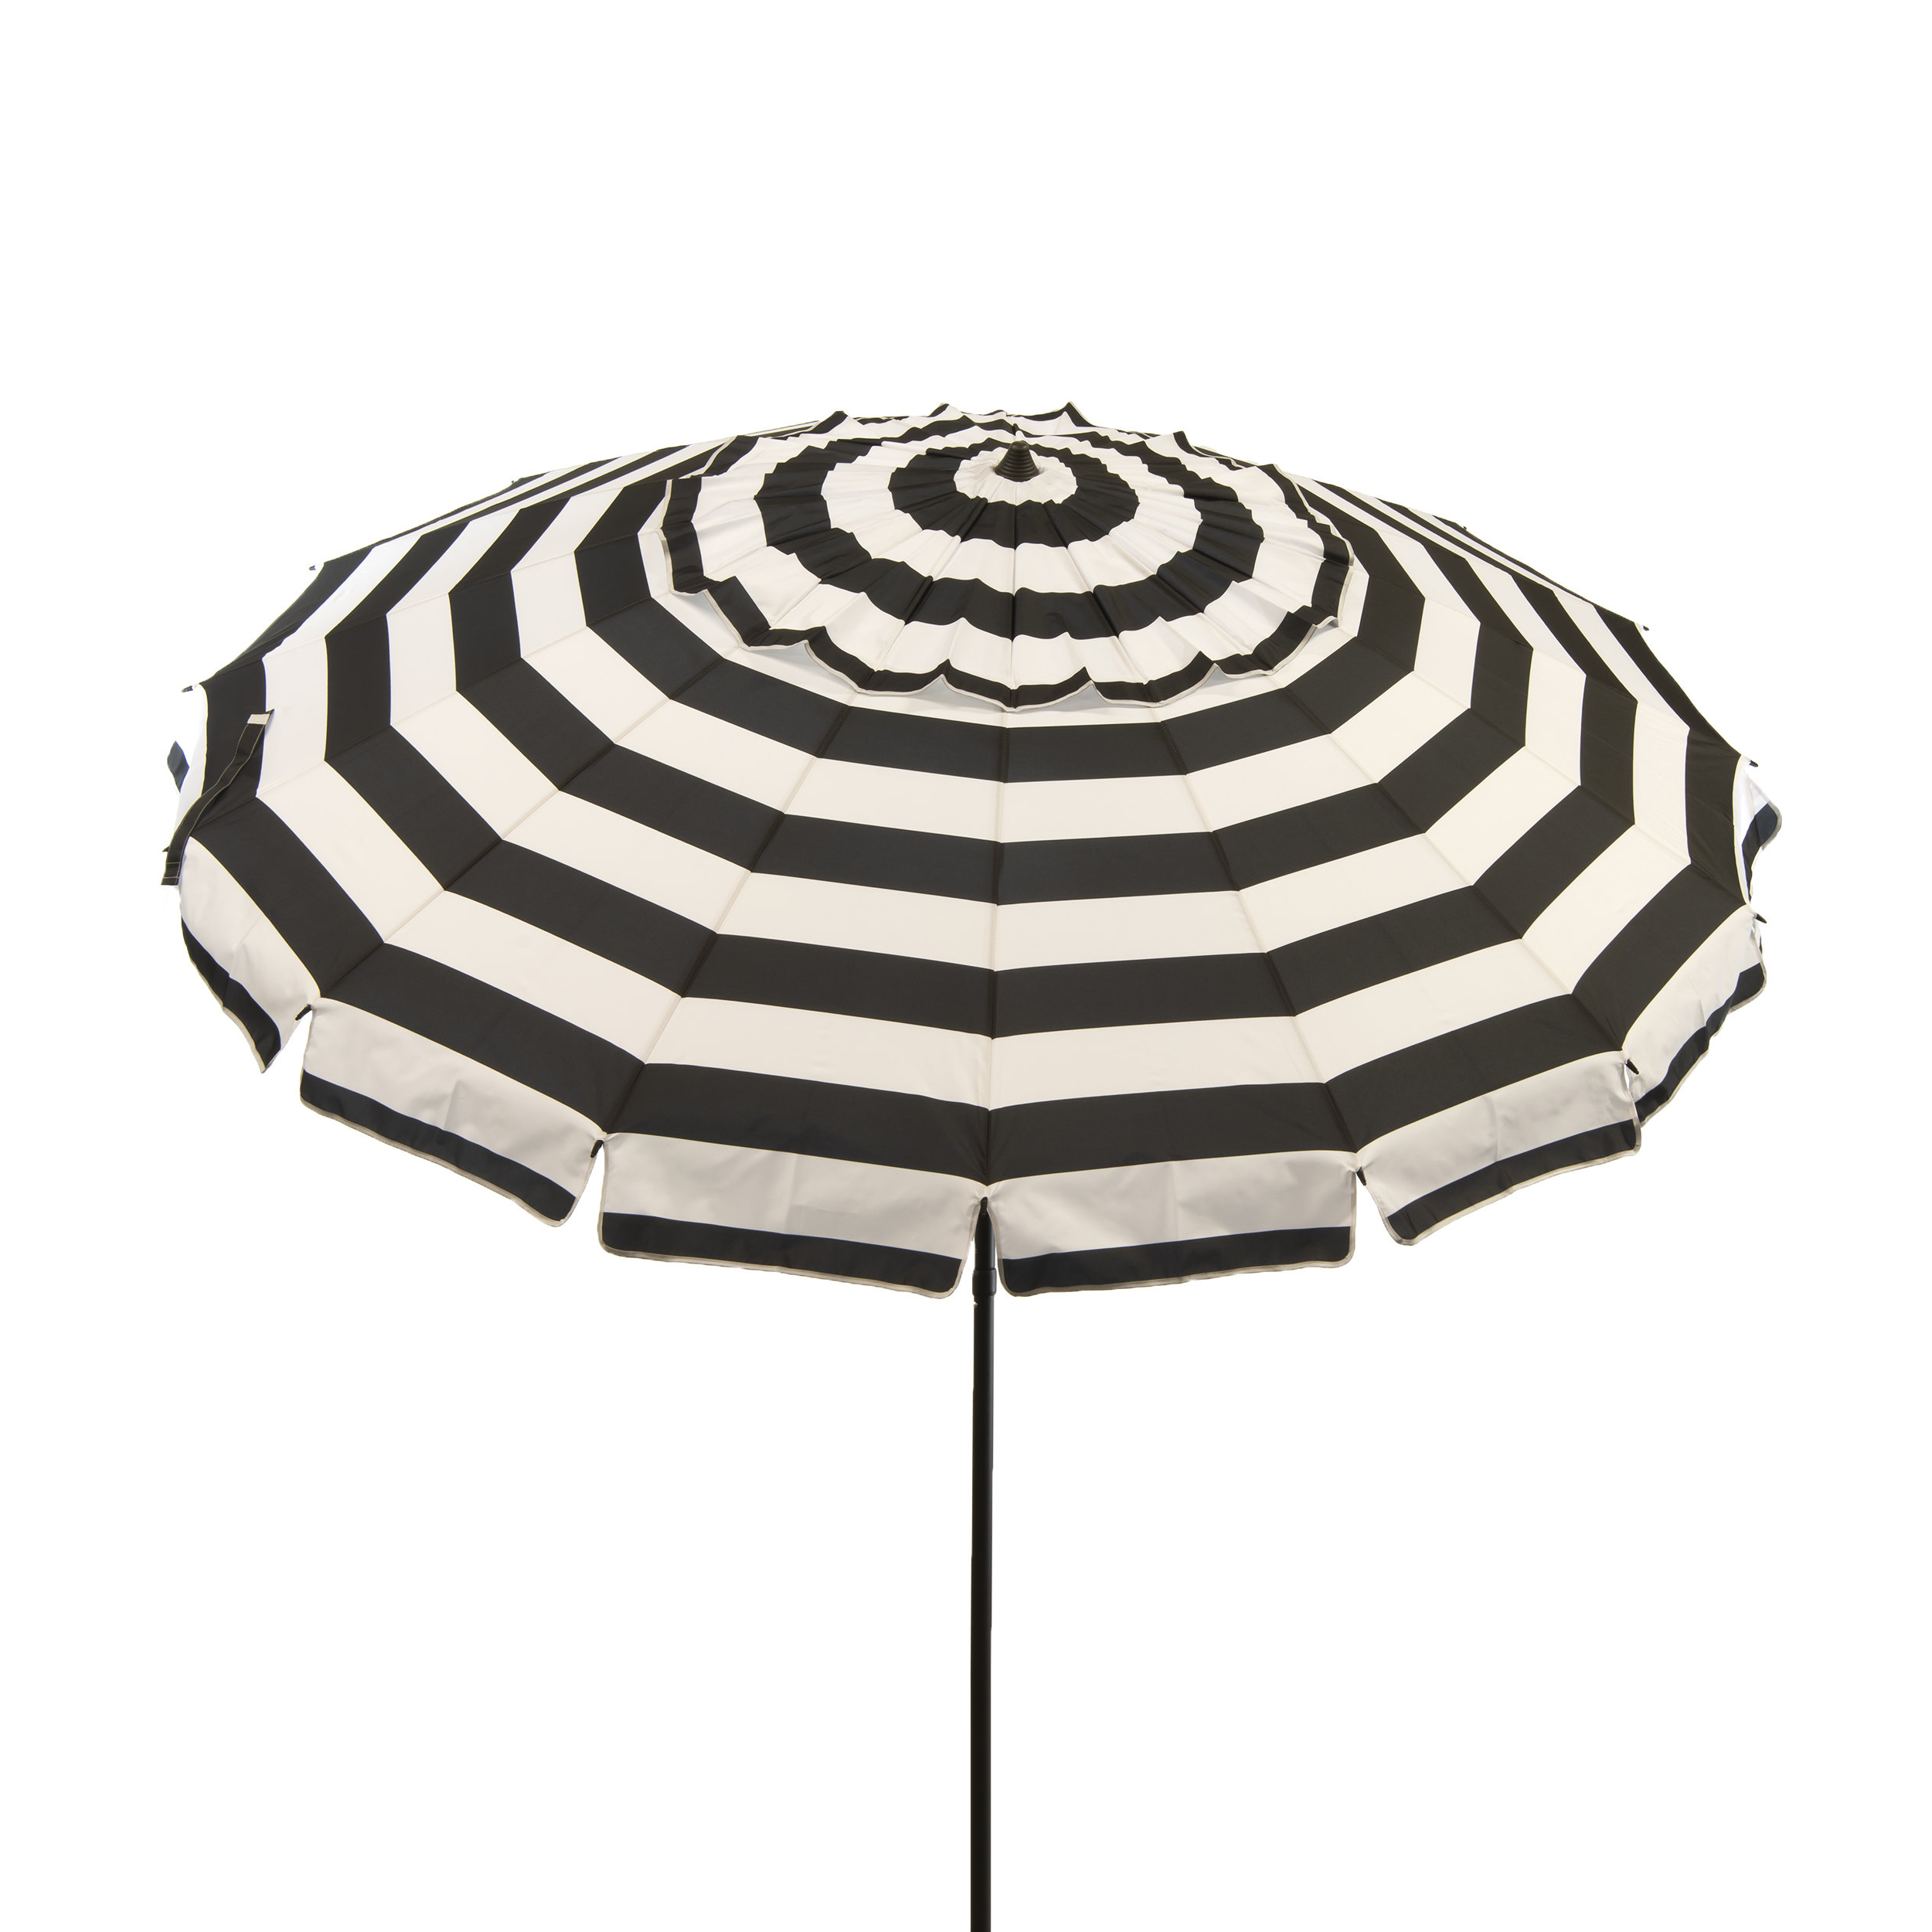 Italian Drape Umbrellas Intended For Famous 8' Beach Umbrella (View 16 of 20)